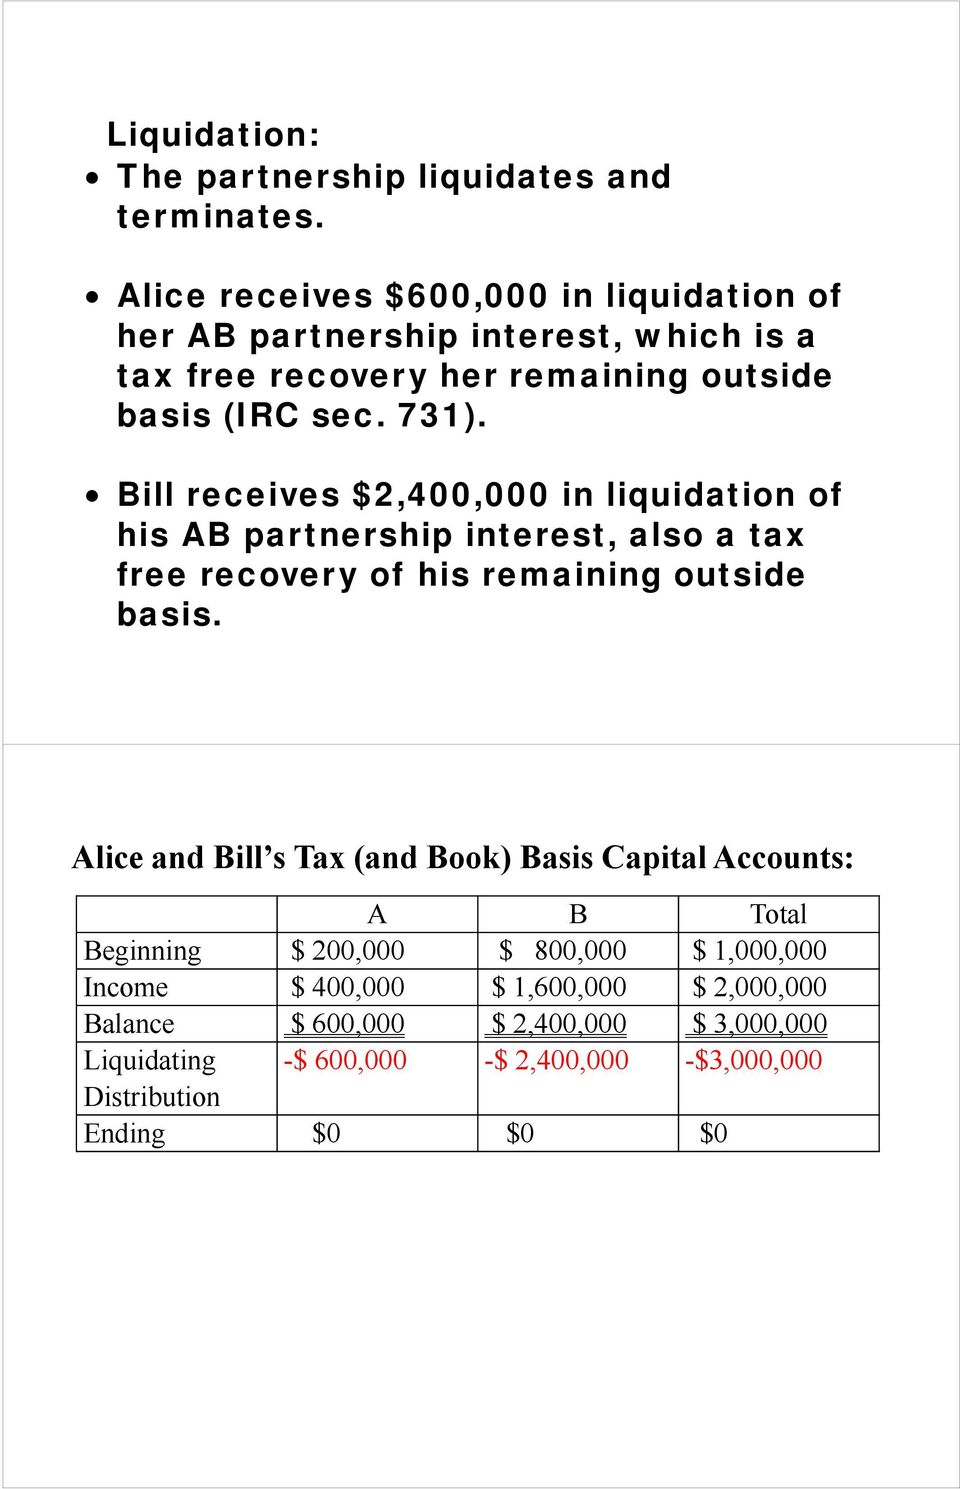 Bill receives $2,400,000 in liquidation of his AB partnership interest, also a tax free recovery of his remaining outside basis.